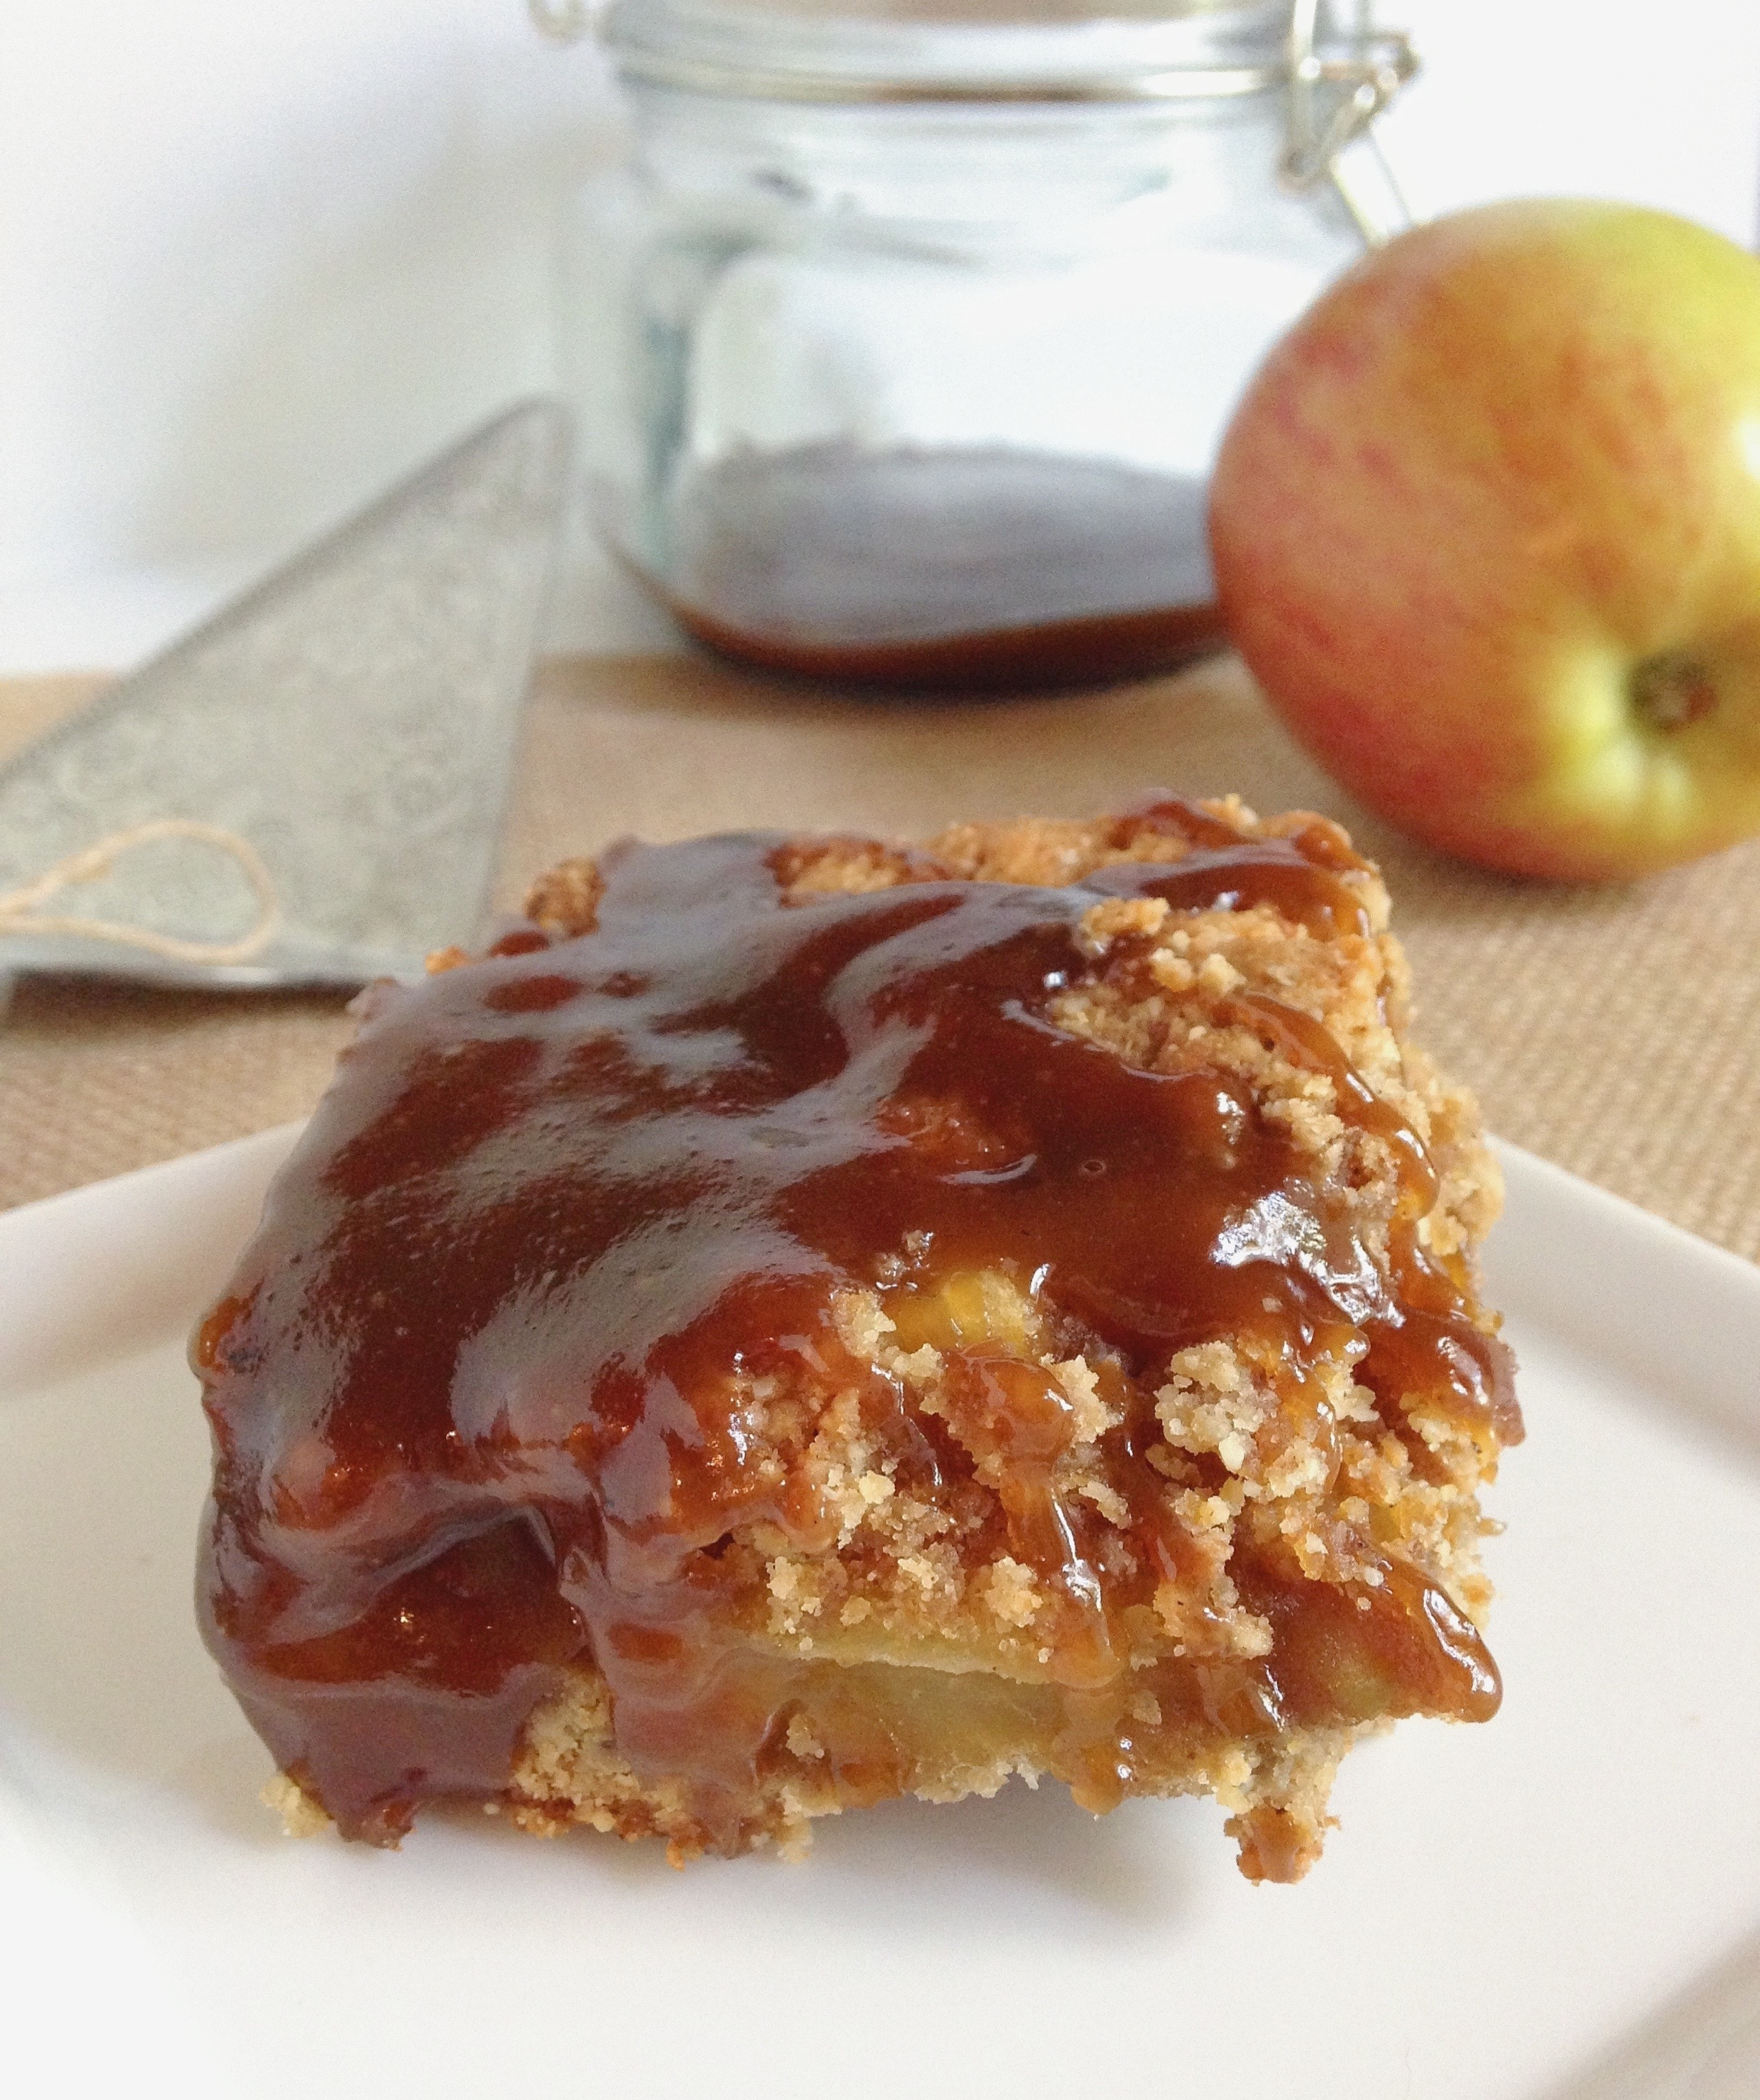 Apple Pie Porn caramel apple pie bars | clean eating with a dirty mind